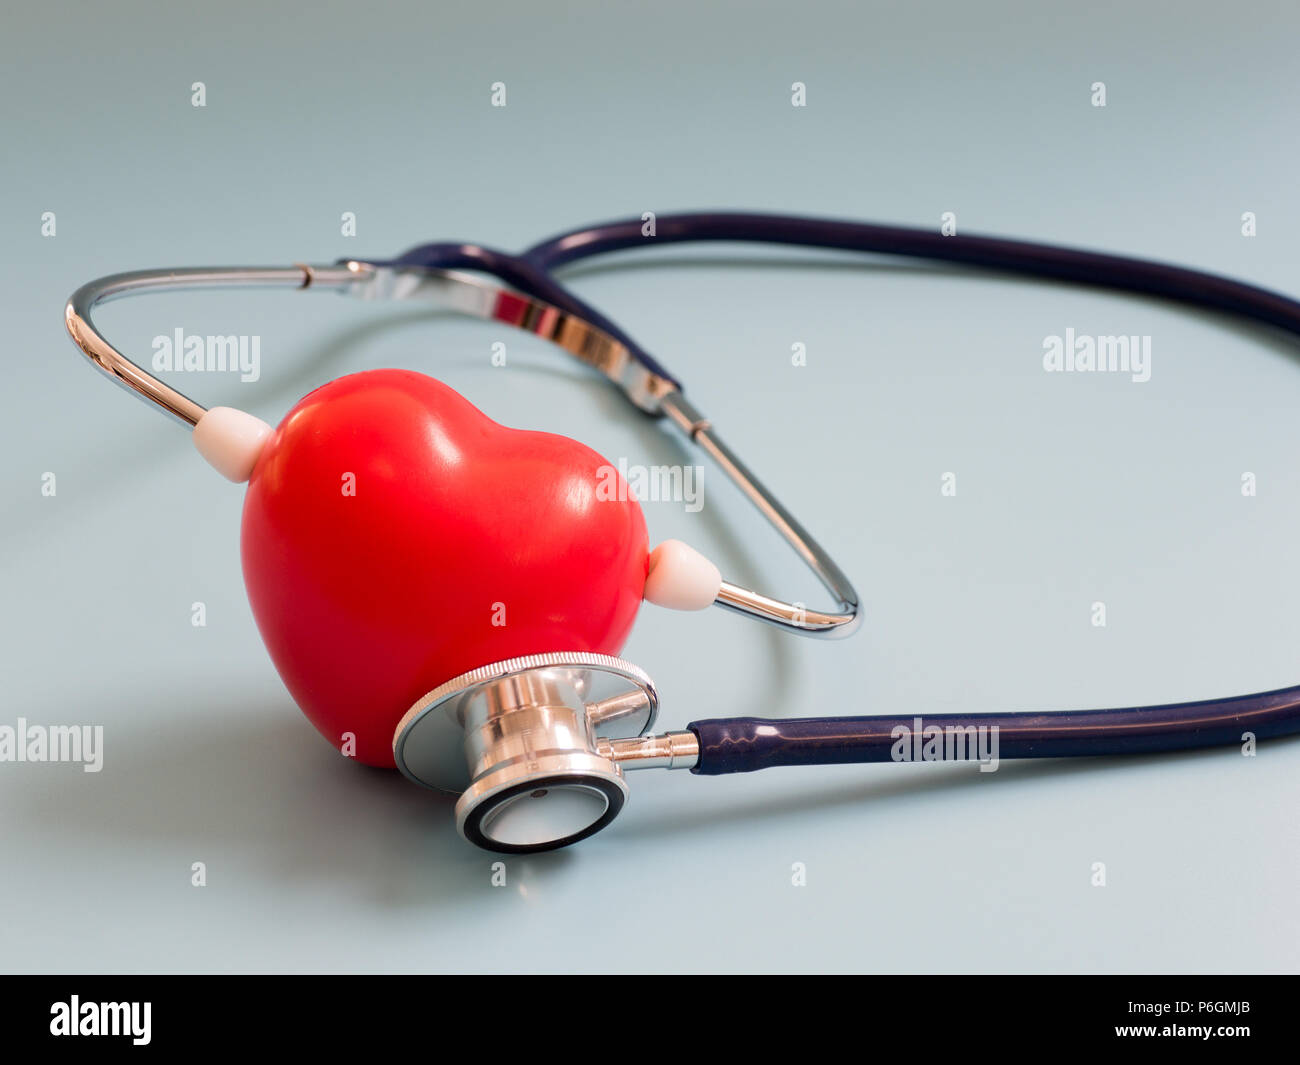 Own Heart Stock Photos & Own Heart Stock Images - Alamy